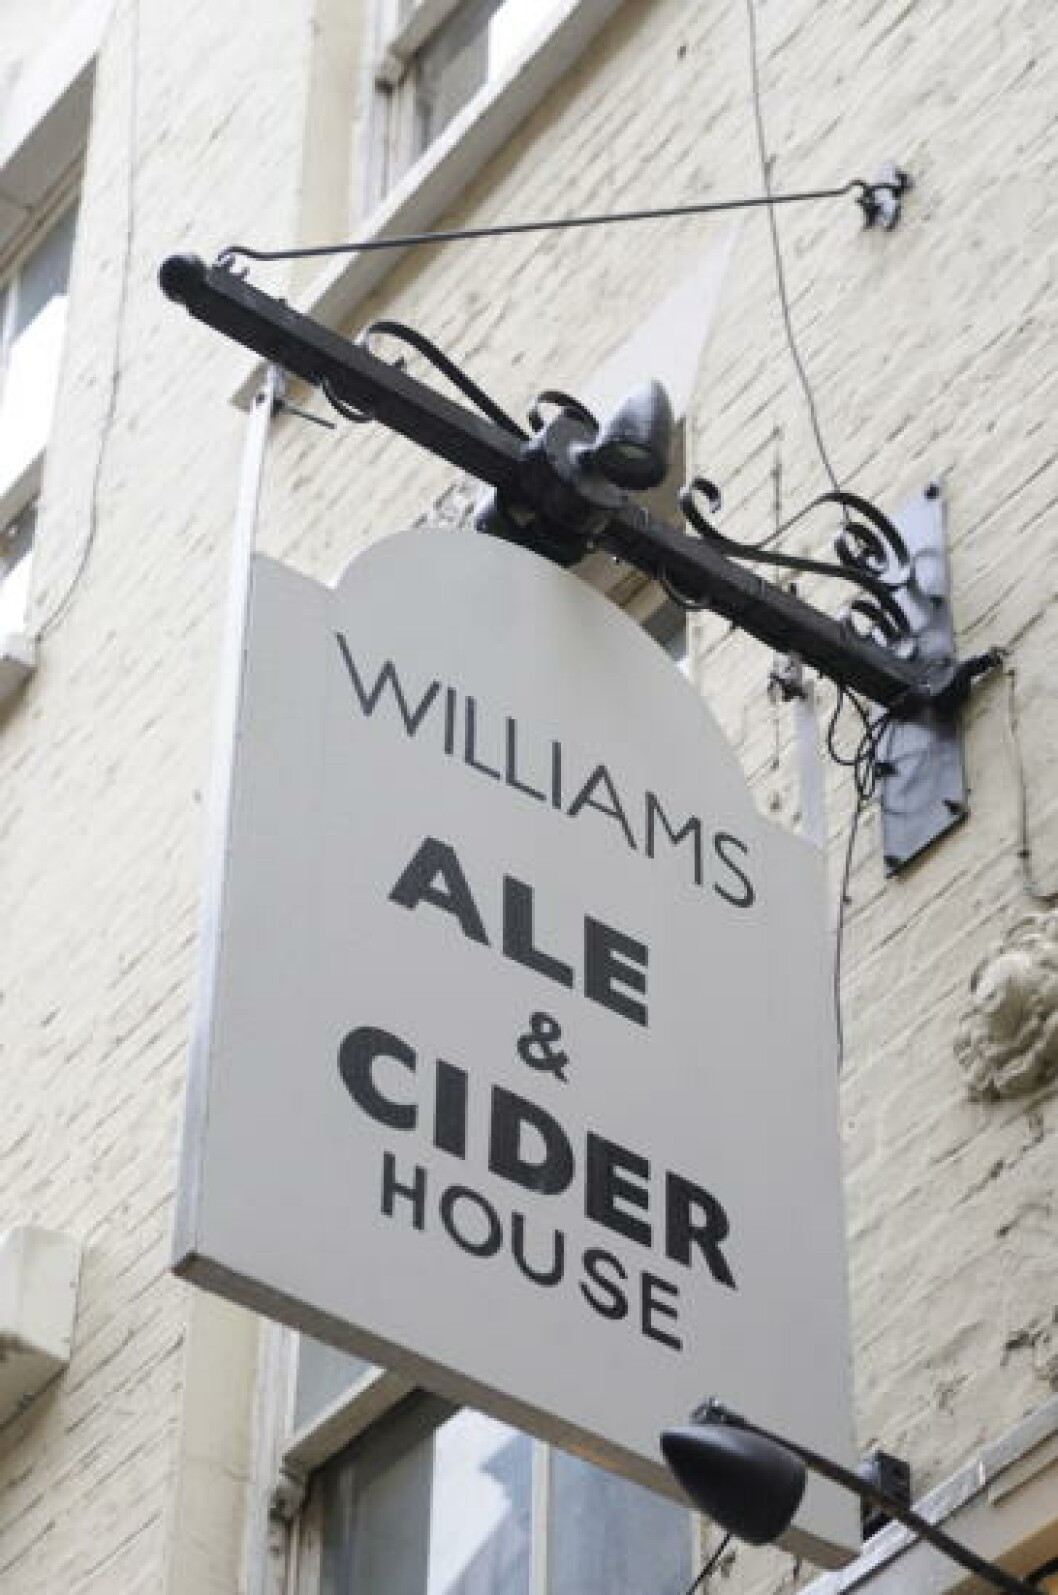 <strong>LONDON BOOZER:</strong> The Williams Ale & Cider House ligger i en av øst-Londons mange smale gater rett ved Liverpool Street station. Foto: MARIANNE WIE